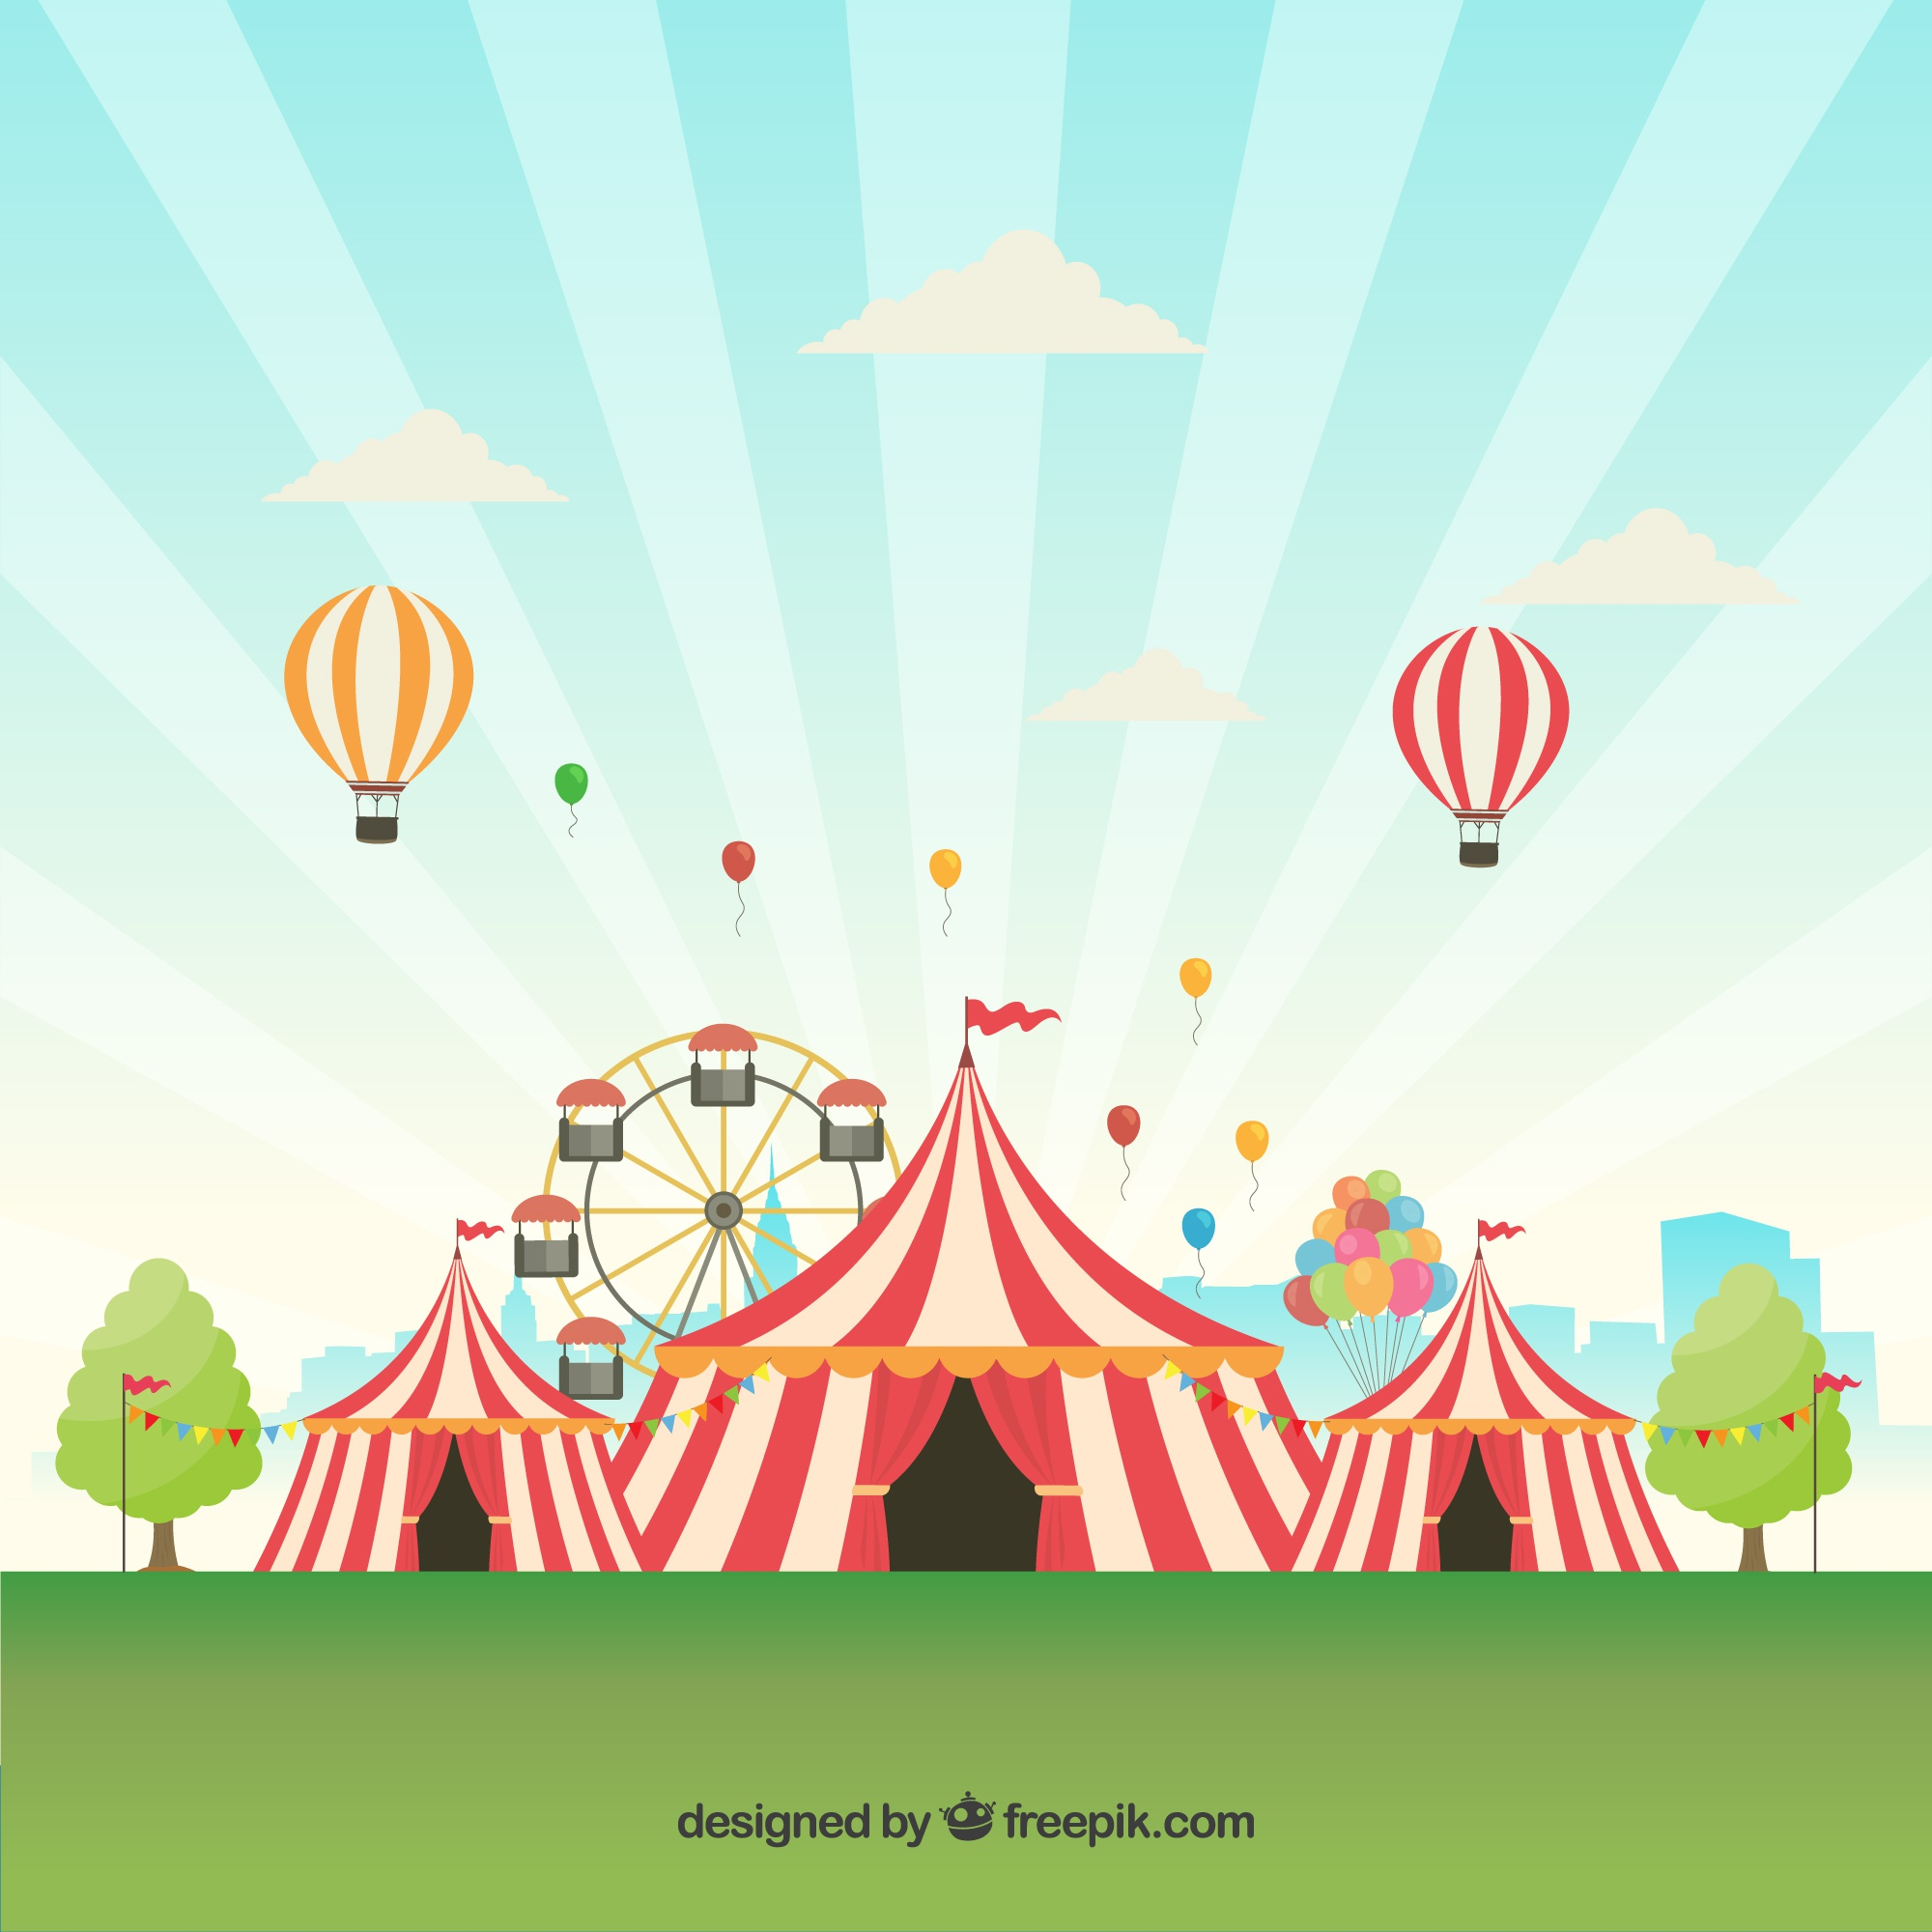 Carnival background design with tents and balloons